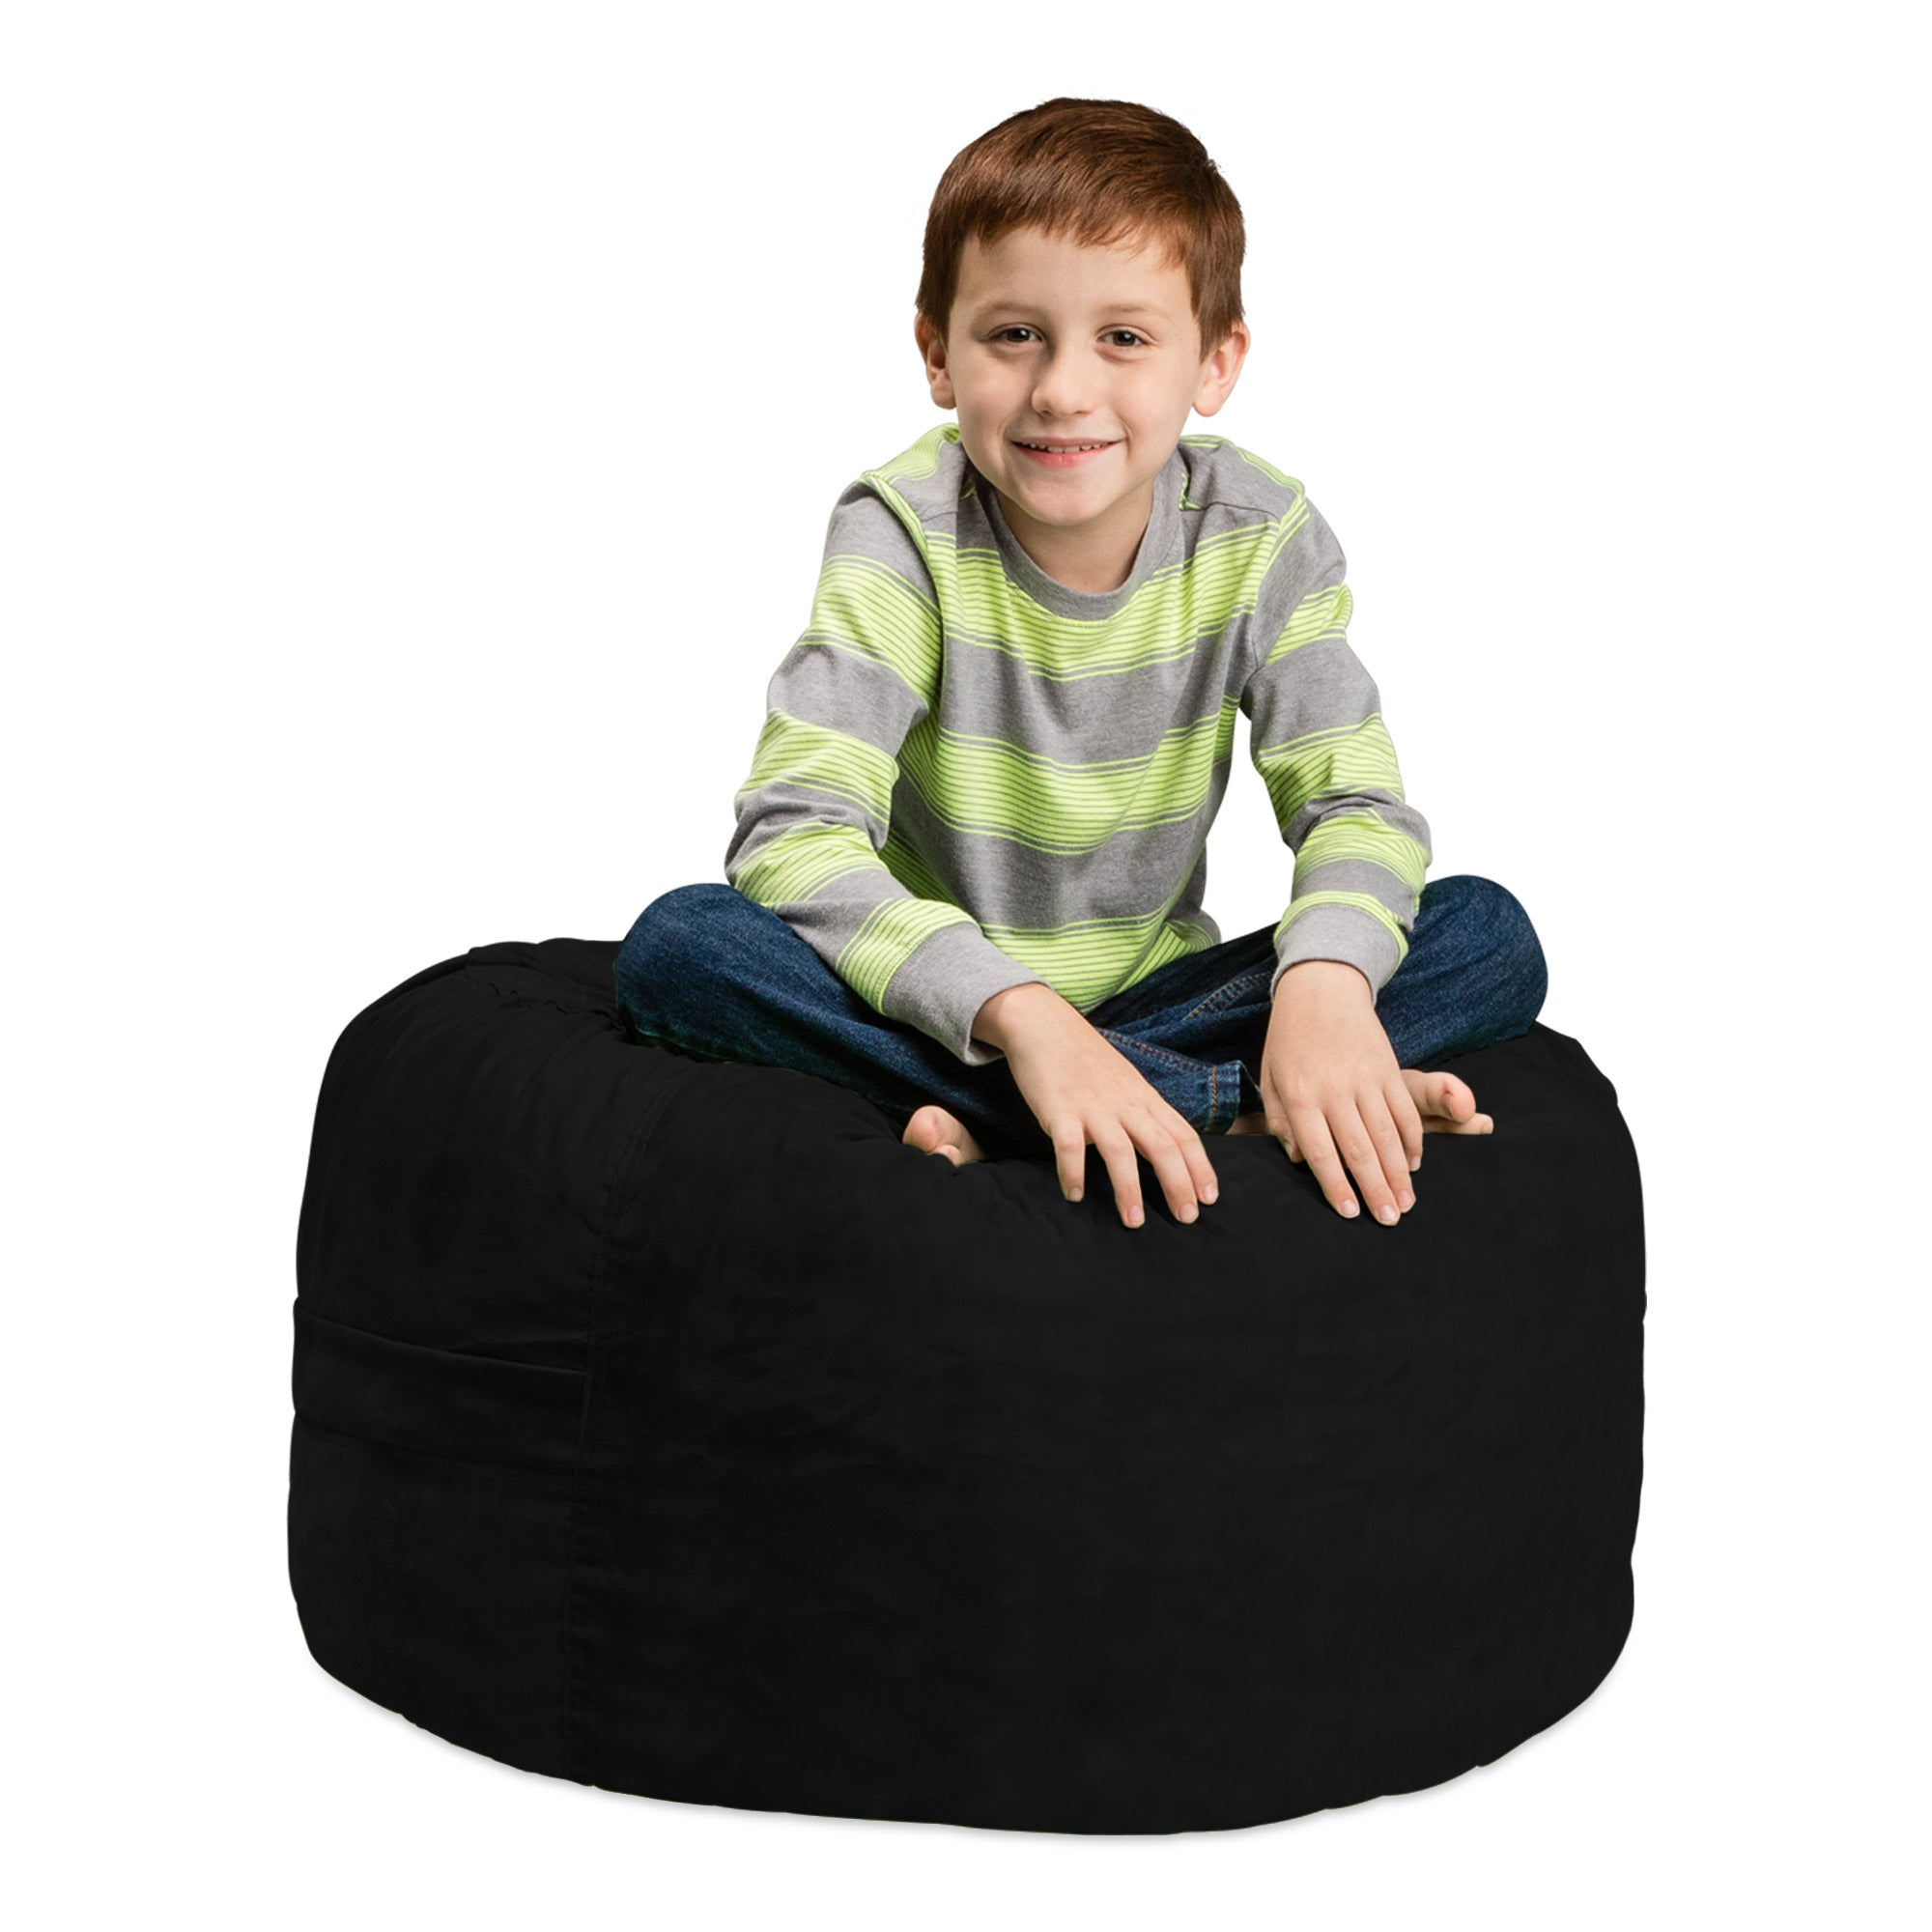 Wondrous 2 Chill Sack Cover Andrewgaddart Wooden Chair Designs For Living Room Andrewgaddartcom